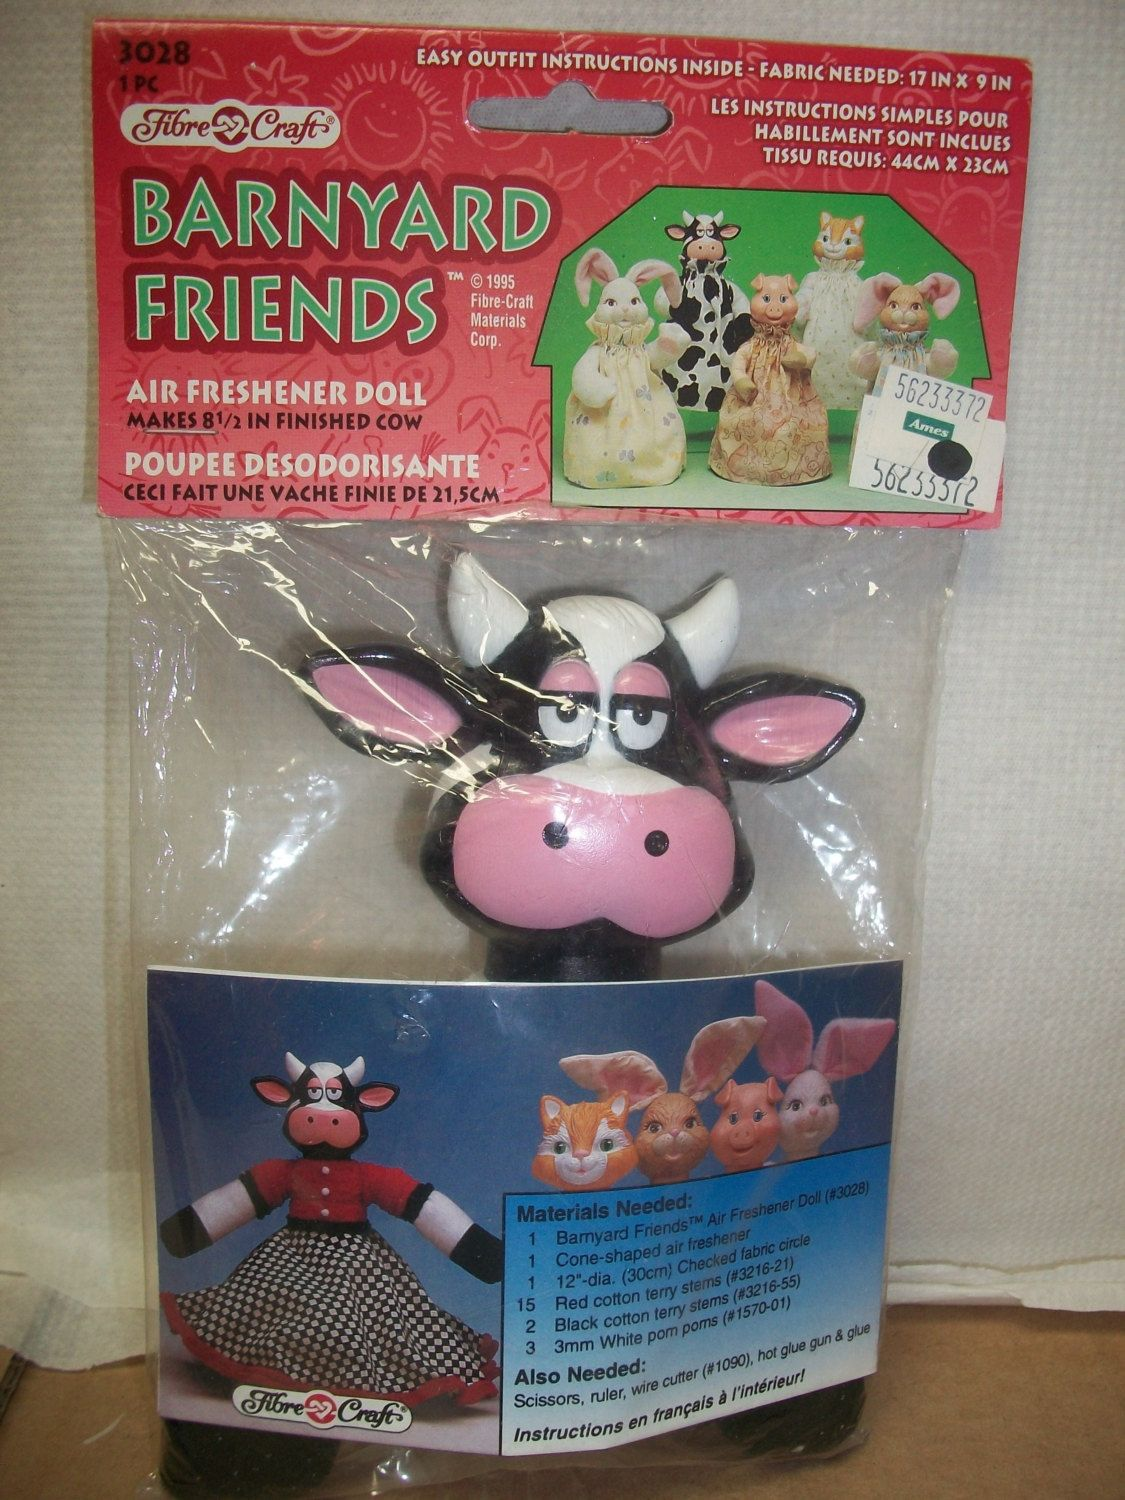 Fibre craft air freshener dolls - Rare Fibre Craft Barnyard Friends Animal Air Freshener Doll Spotted Cow By